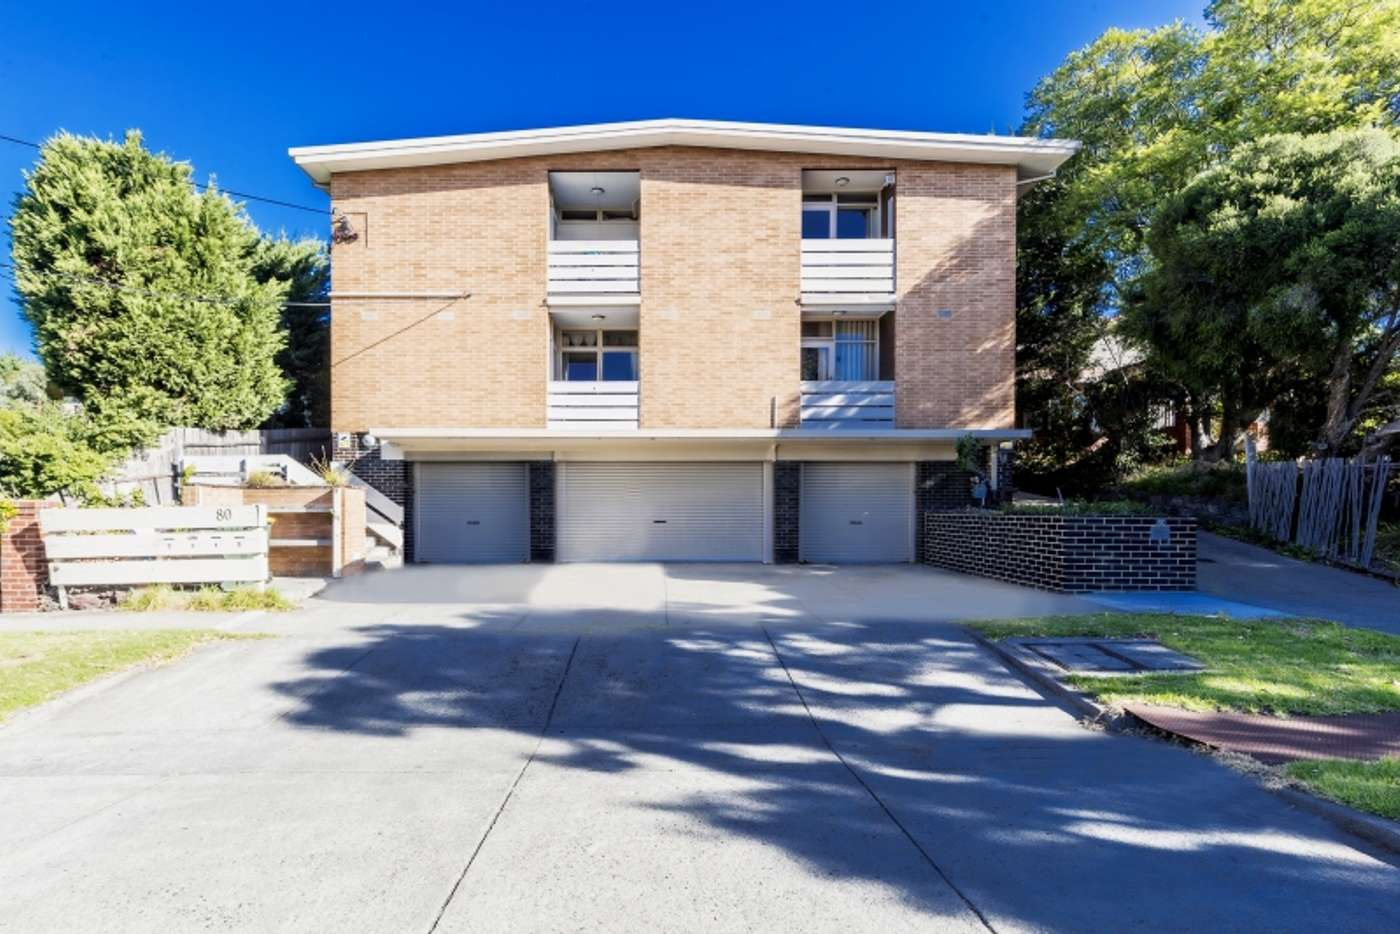 Main view of Homely apartment listing, 3/80 Napier Crescent, Essendon VIC 3040